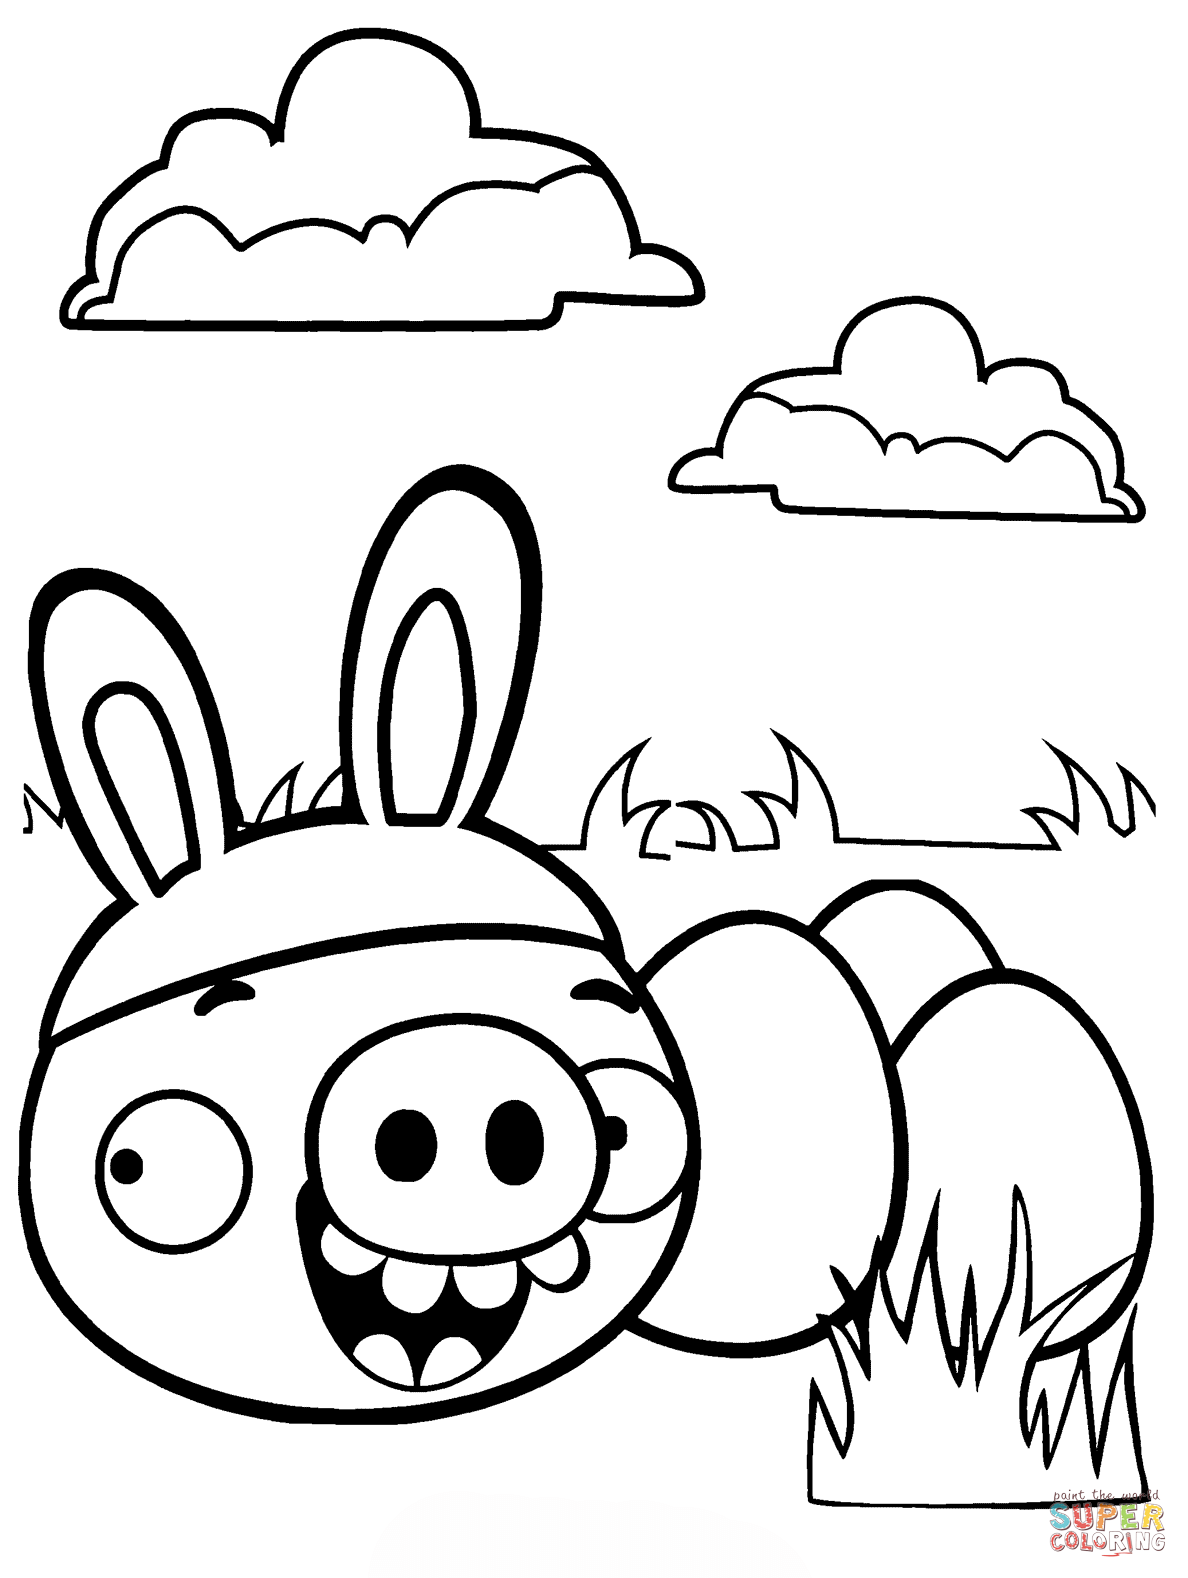 1188x1578 Minion Pig Stealing Easter Eggs Coloring Page Free Printable